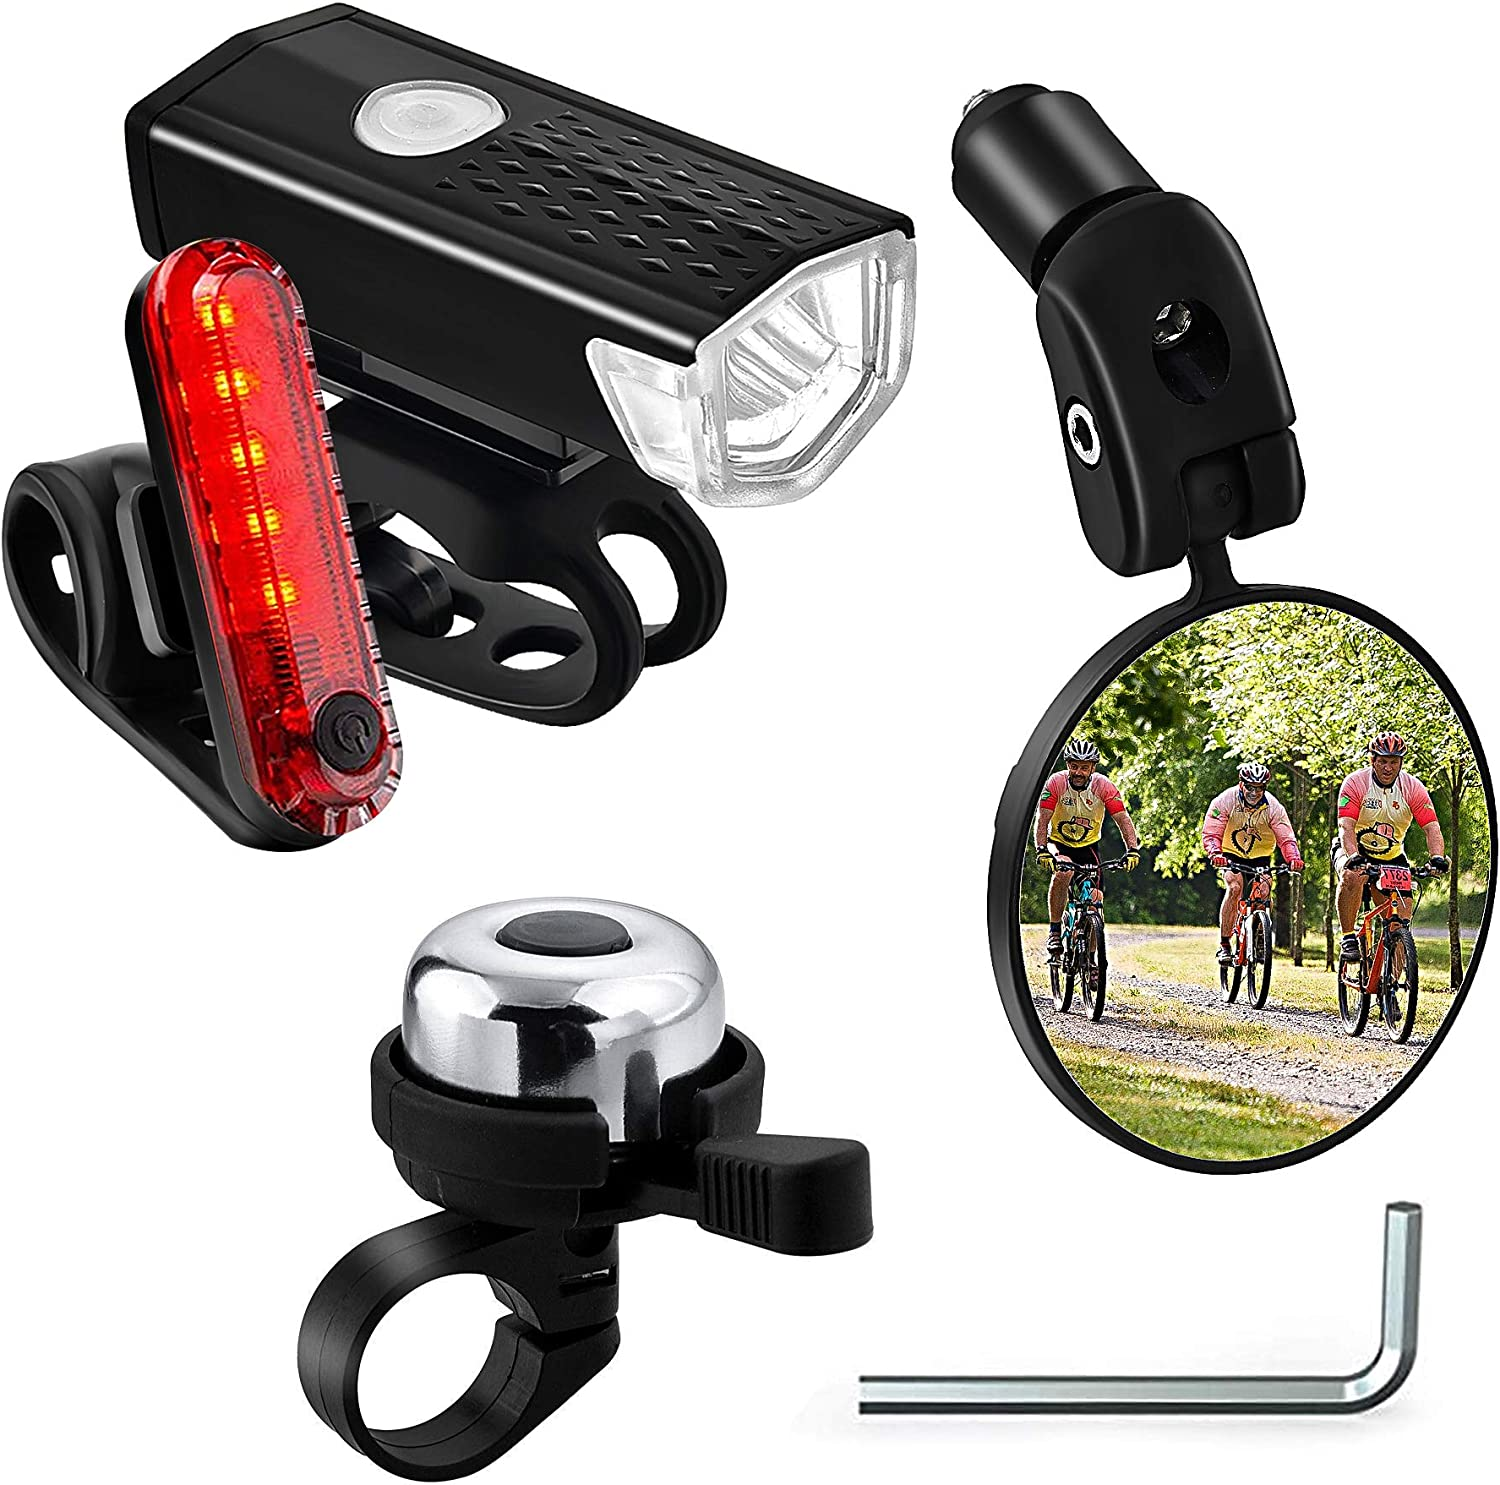 Ornalry Bicycle Accessories 4 PCs Bike Mirror Include Bell Max 73% OFF Industry No. 1